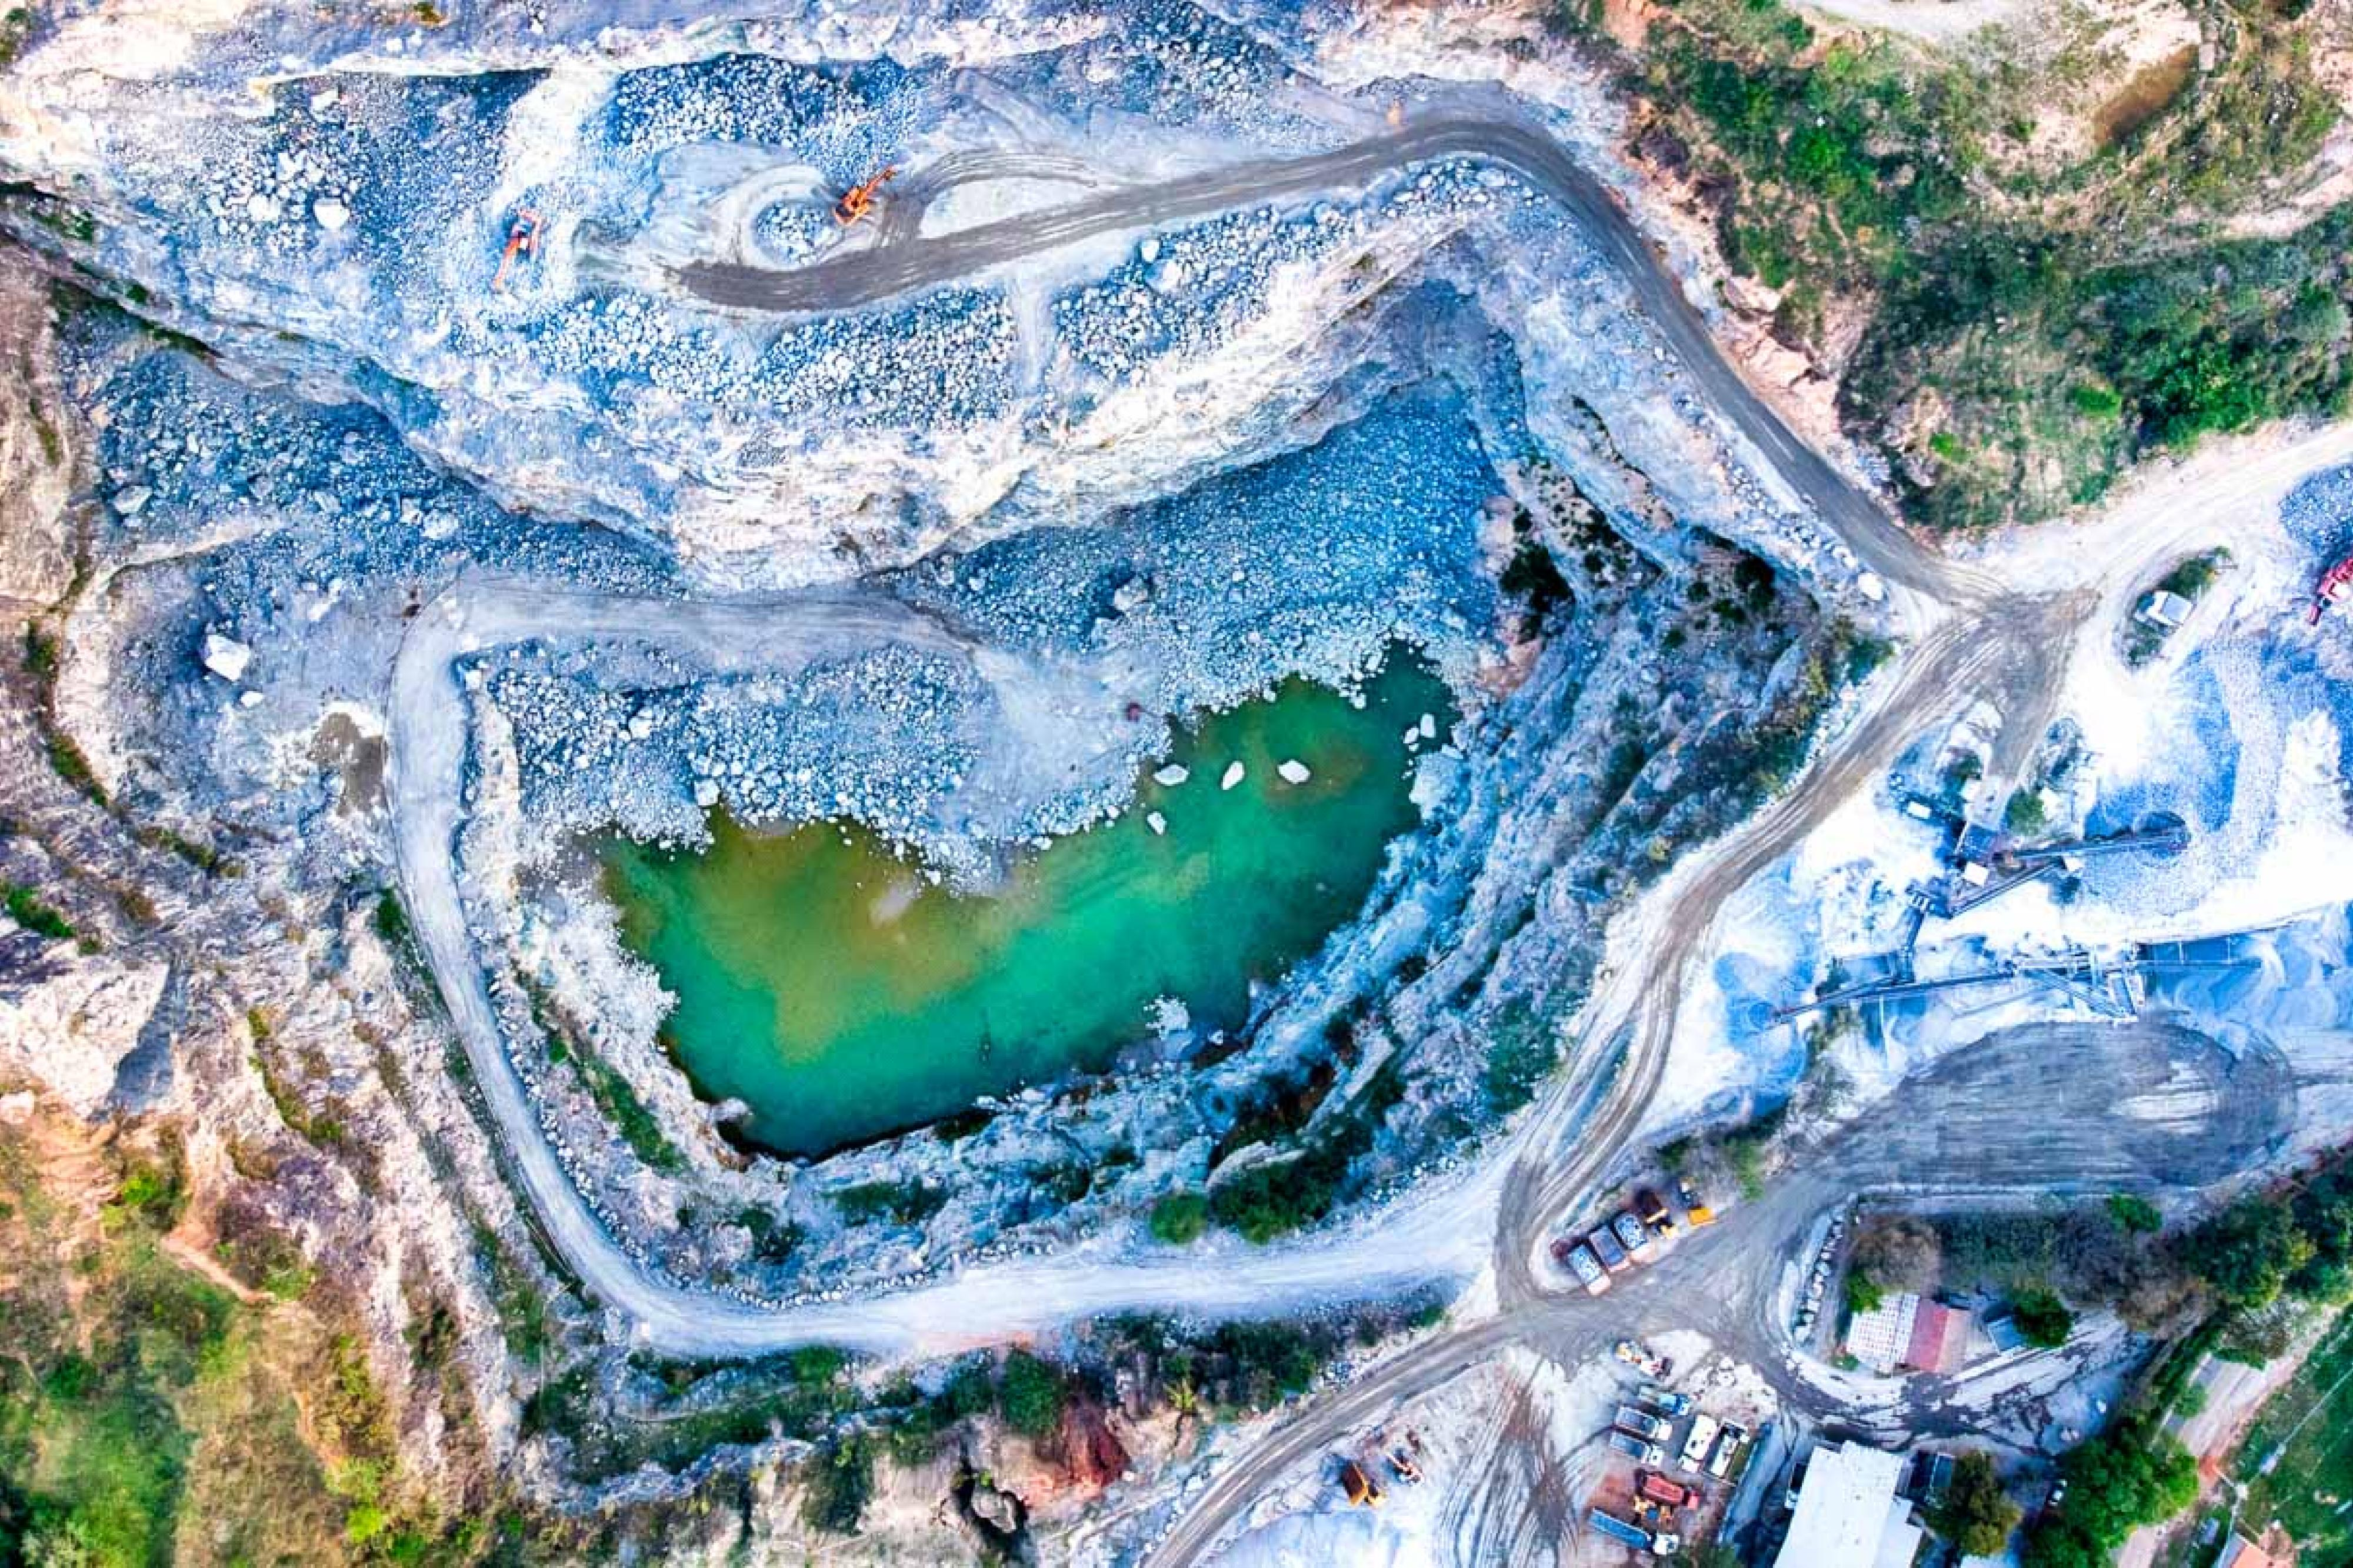 Aerial view of a quarry